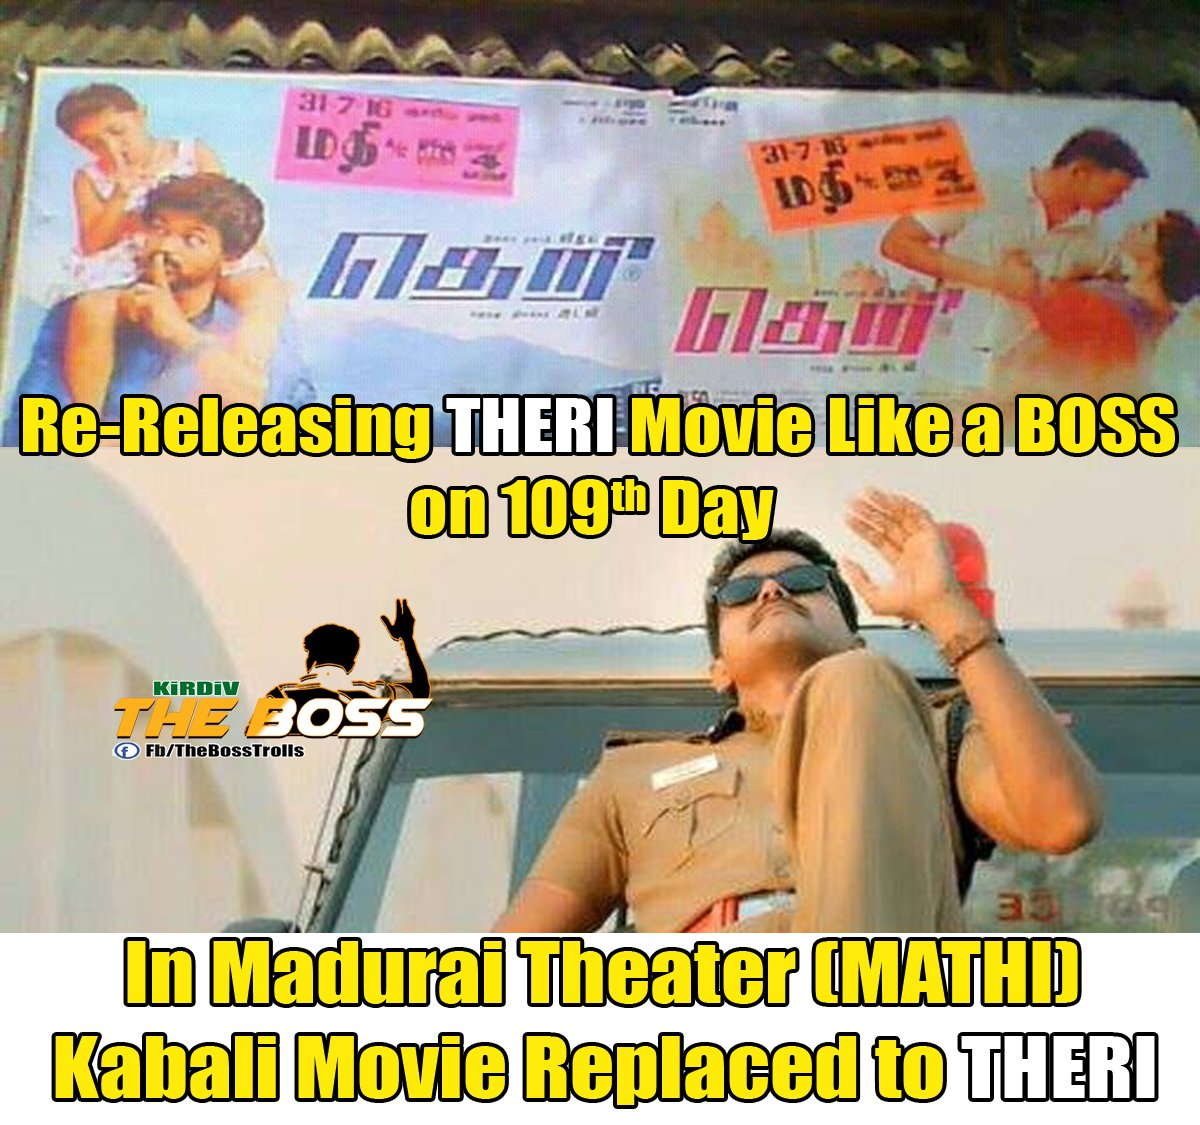 Re-Releasing THERI Movie Like a BOSS on 109th Day